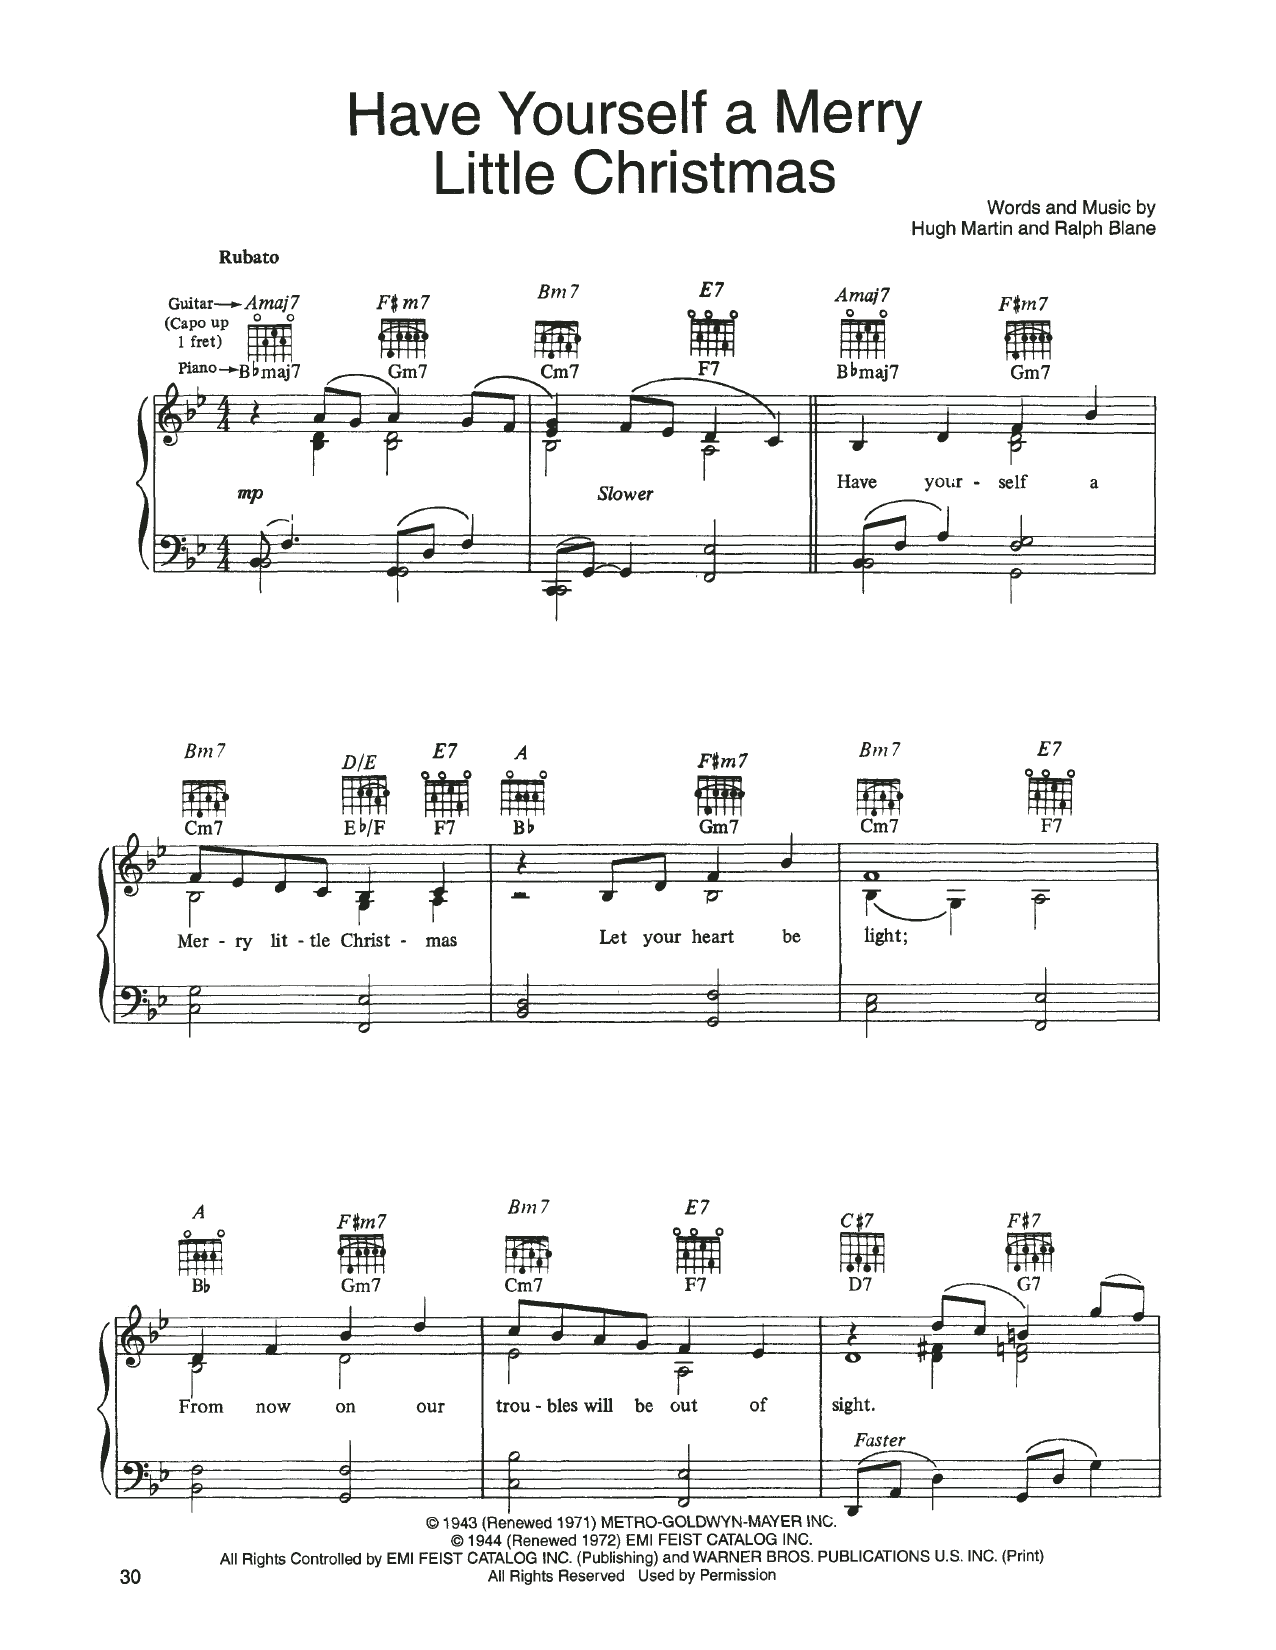 John Denver and The Muppets Have Yourself A Merry Little Christmas (from A Christmas Together) sheet music notes printable PDF score